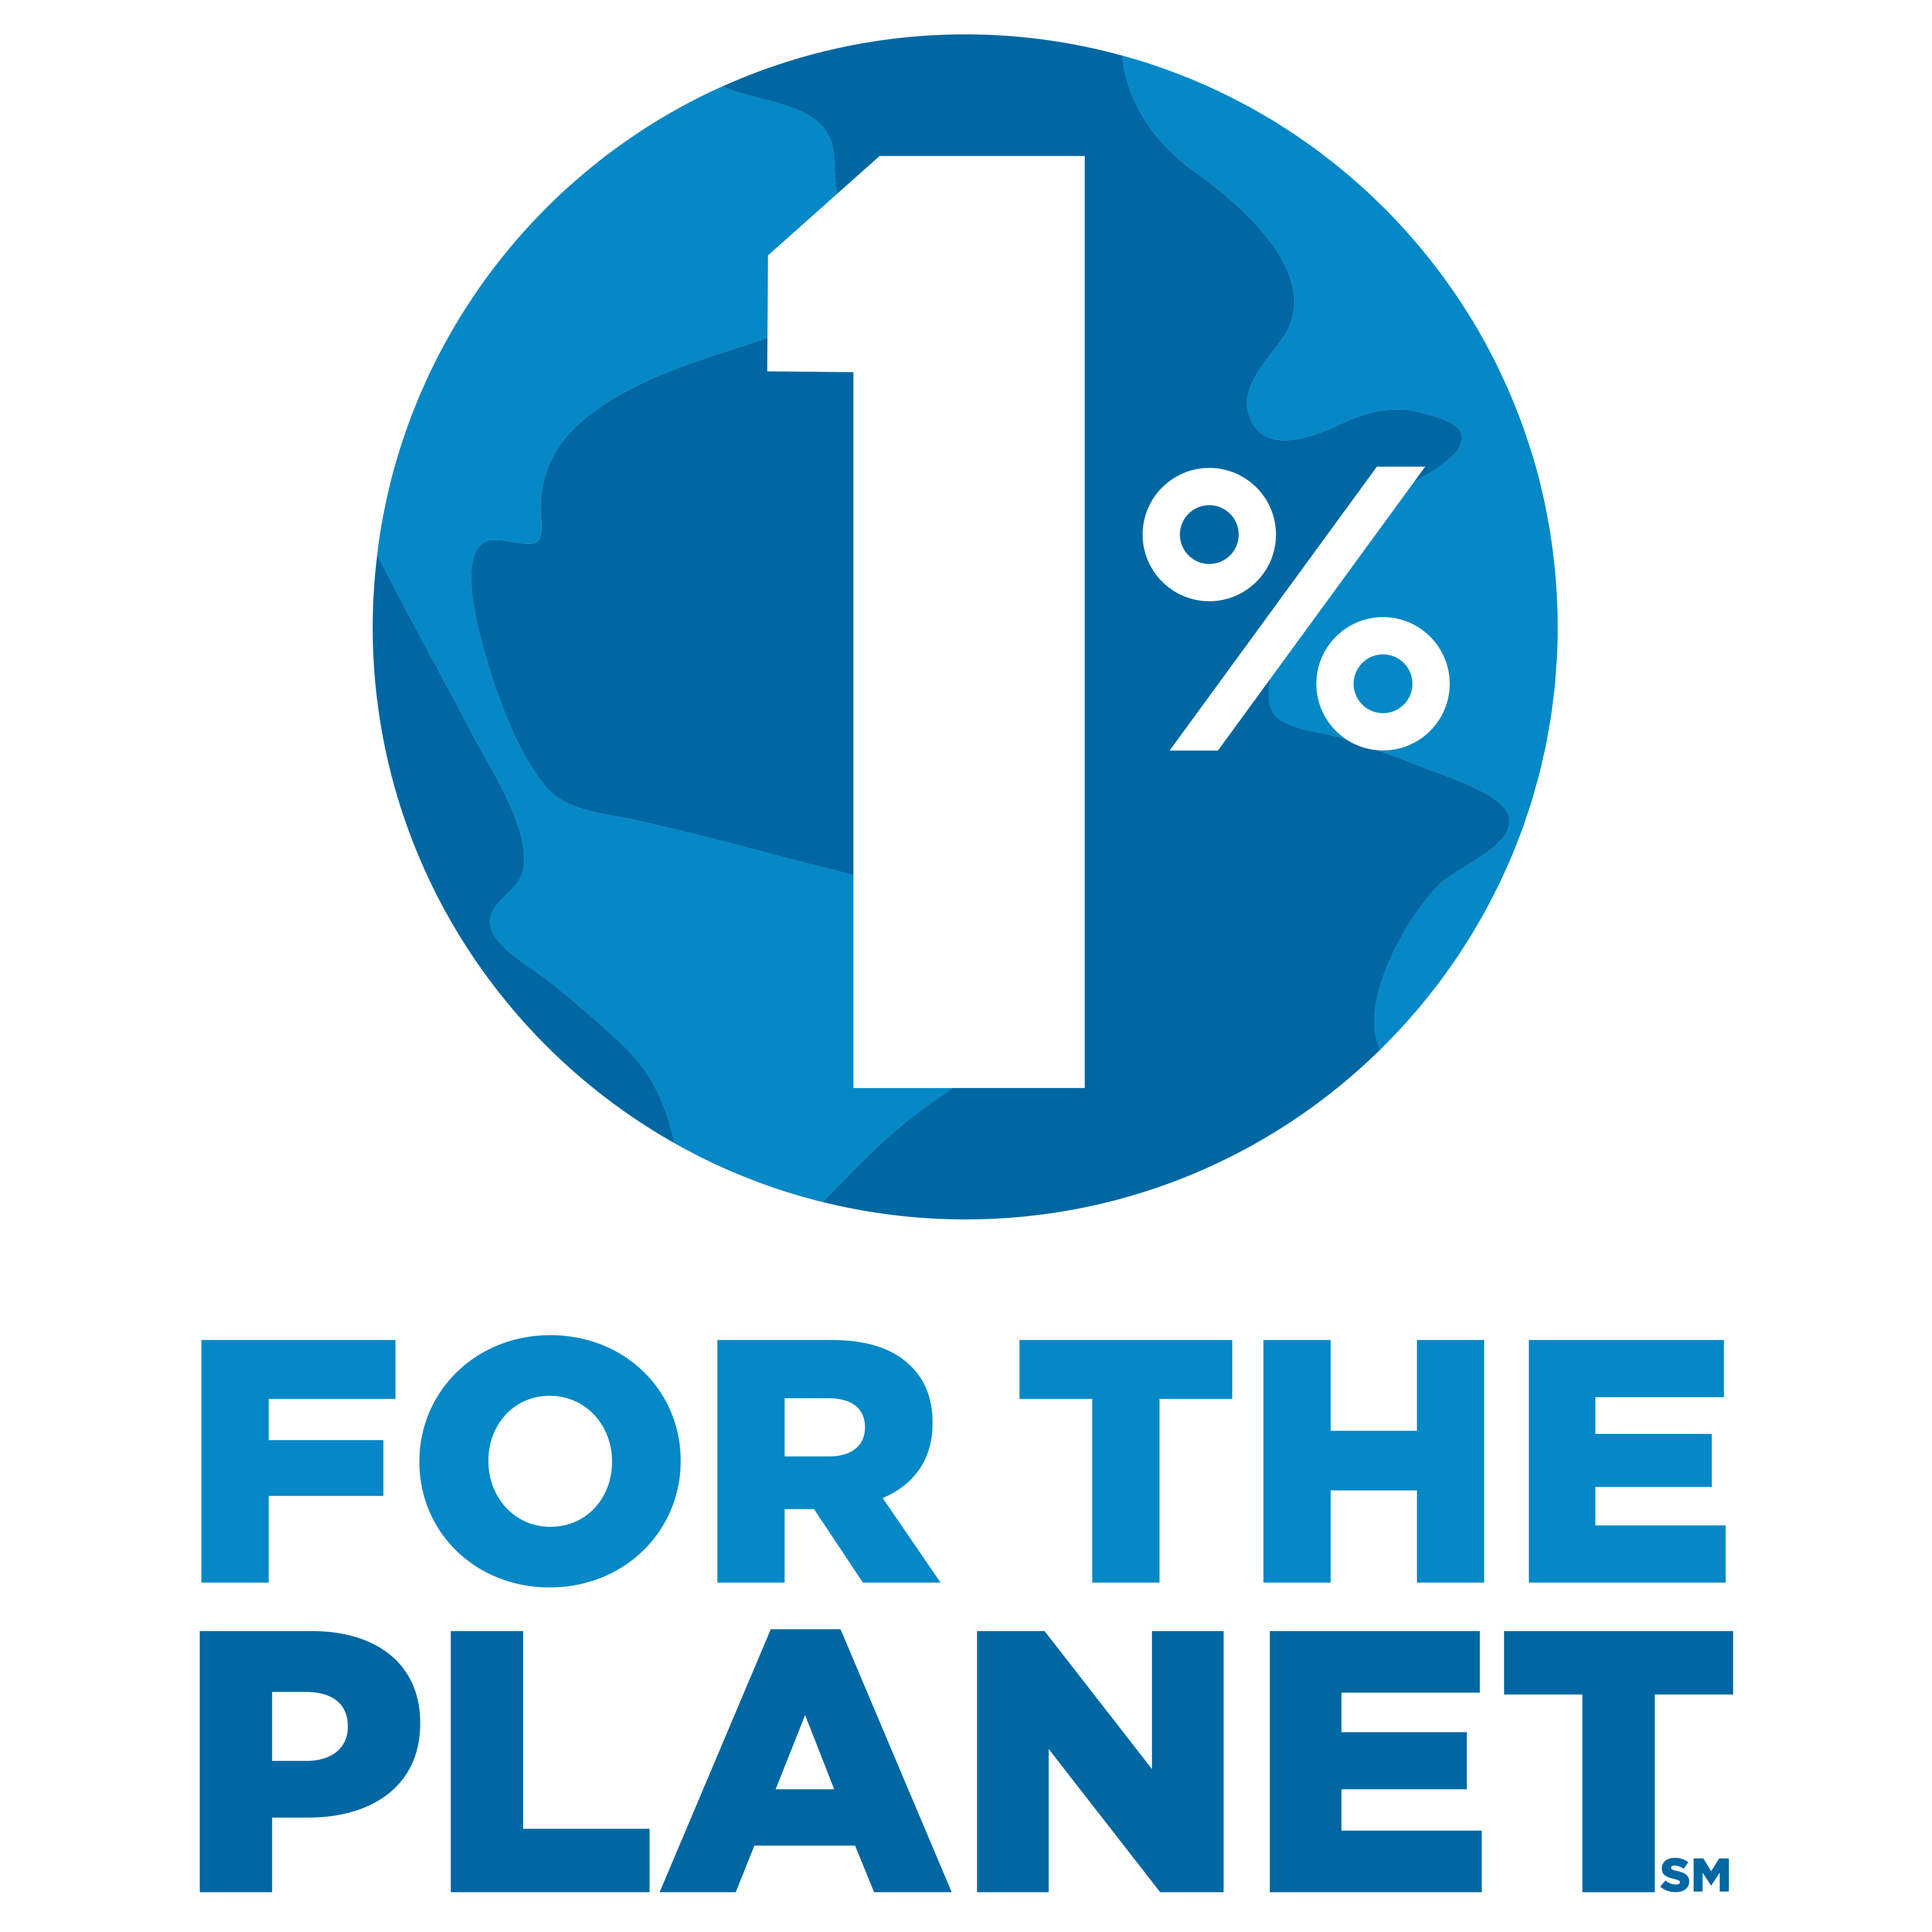 1% for the planet logo colour